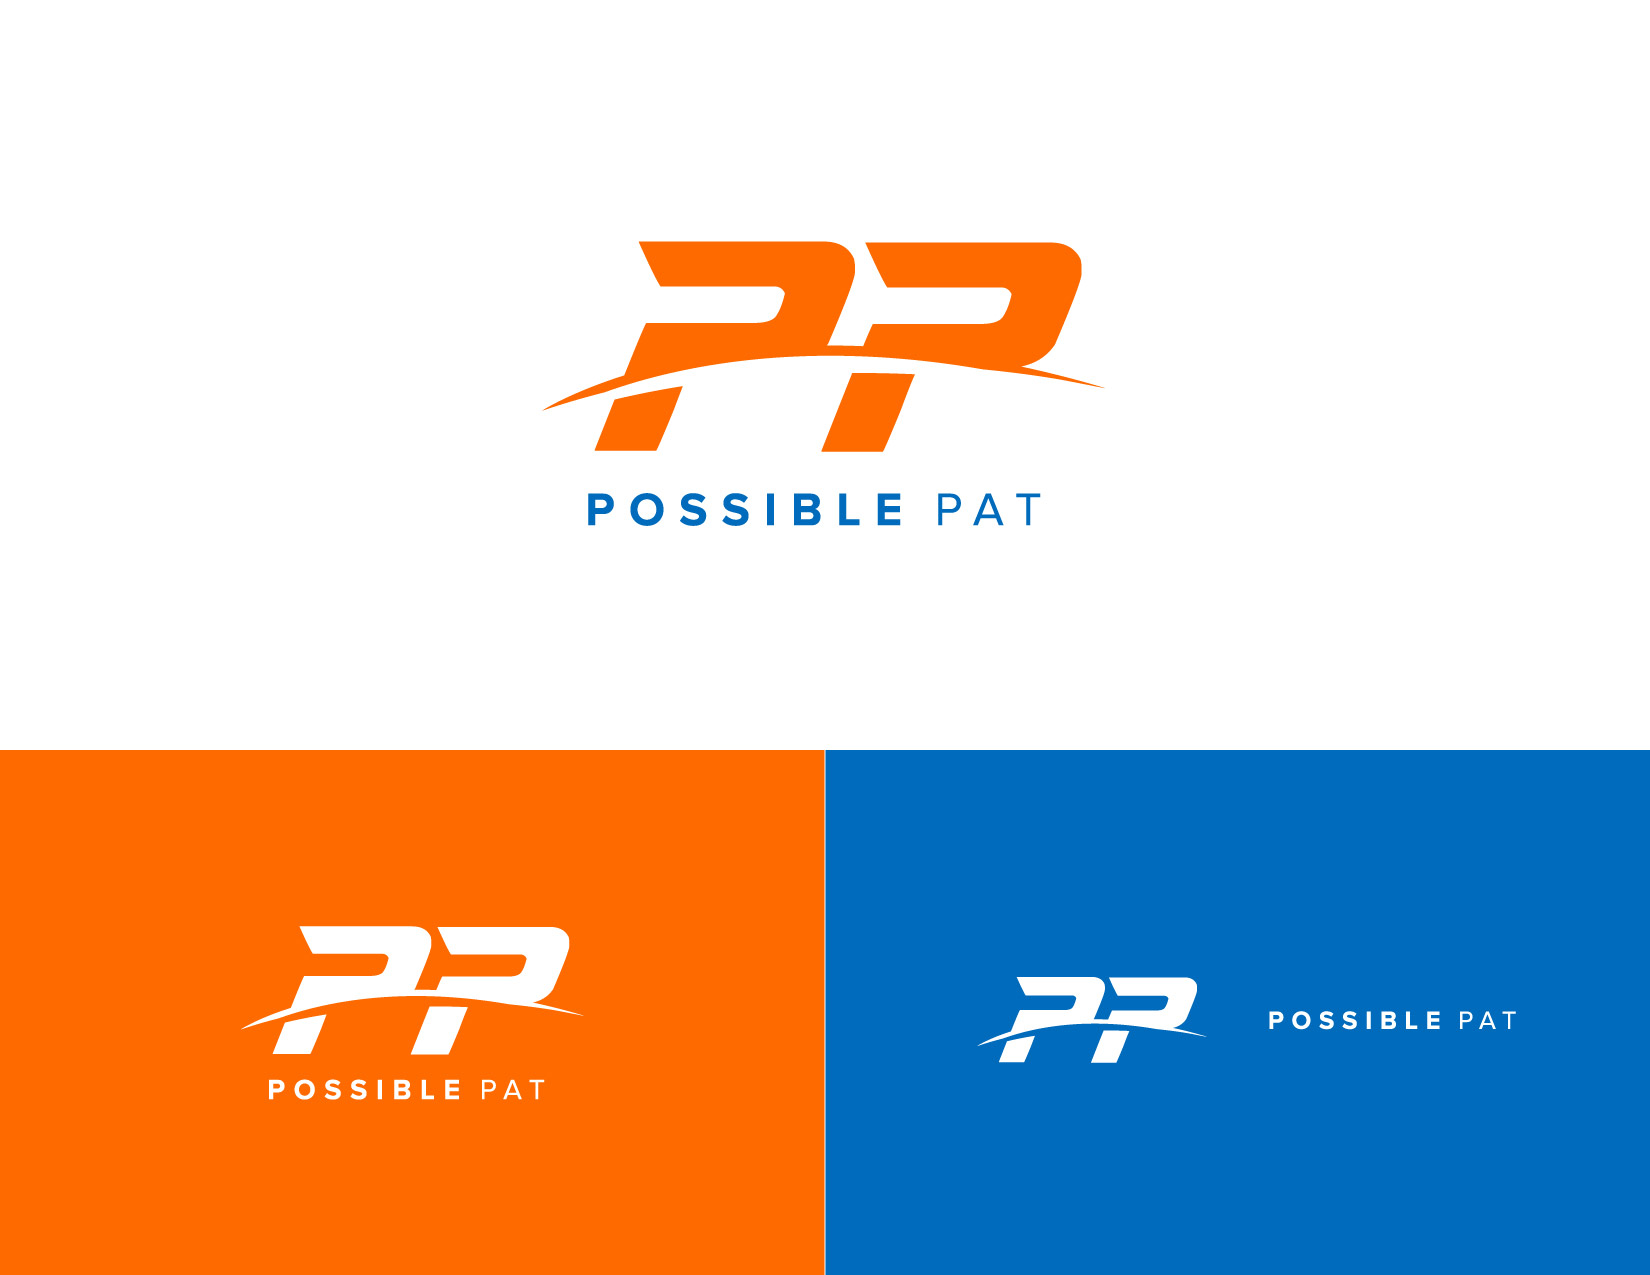 Logo design and branding for Possible Pat, fitness influencer featured on Ellen. James Cannella Marketing, Design, and Artificial Intelligence Consulting Services